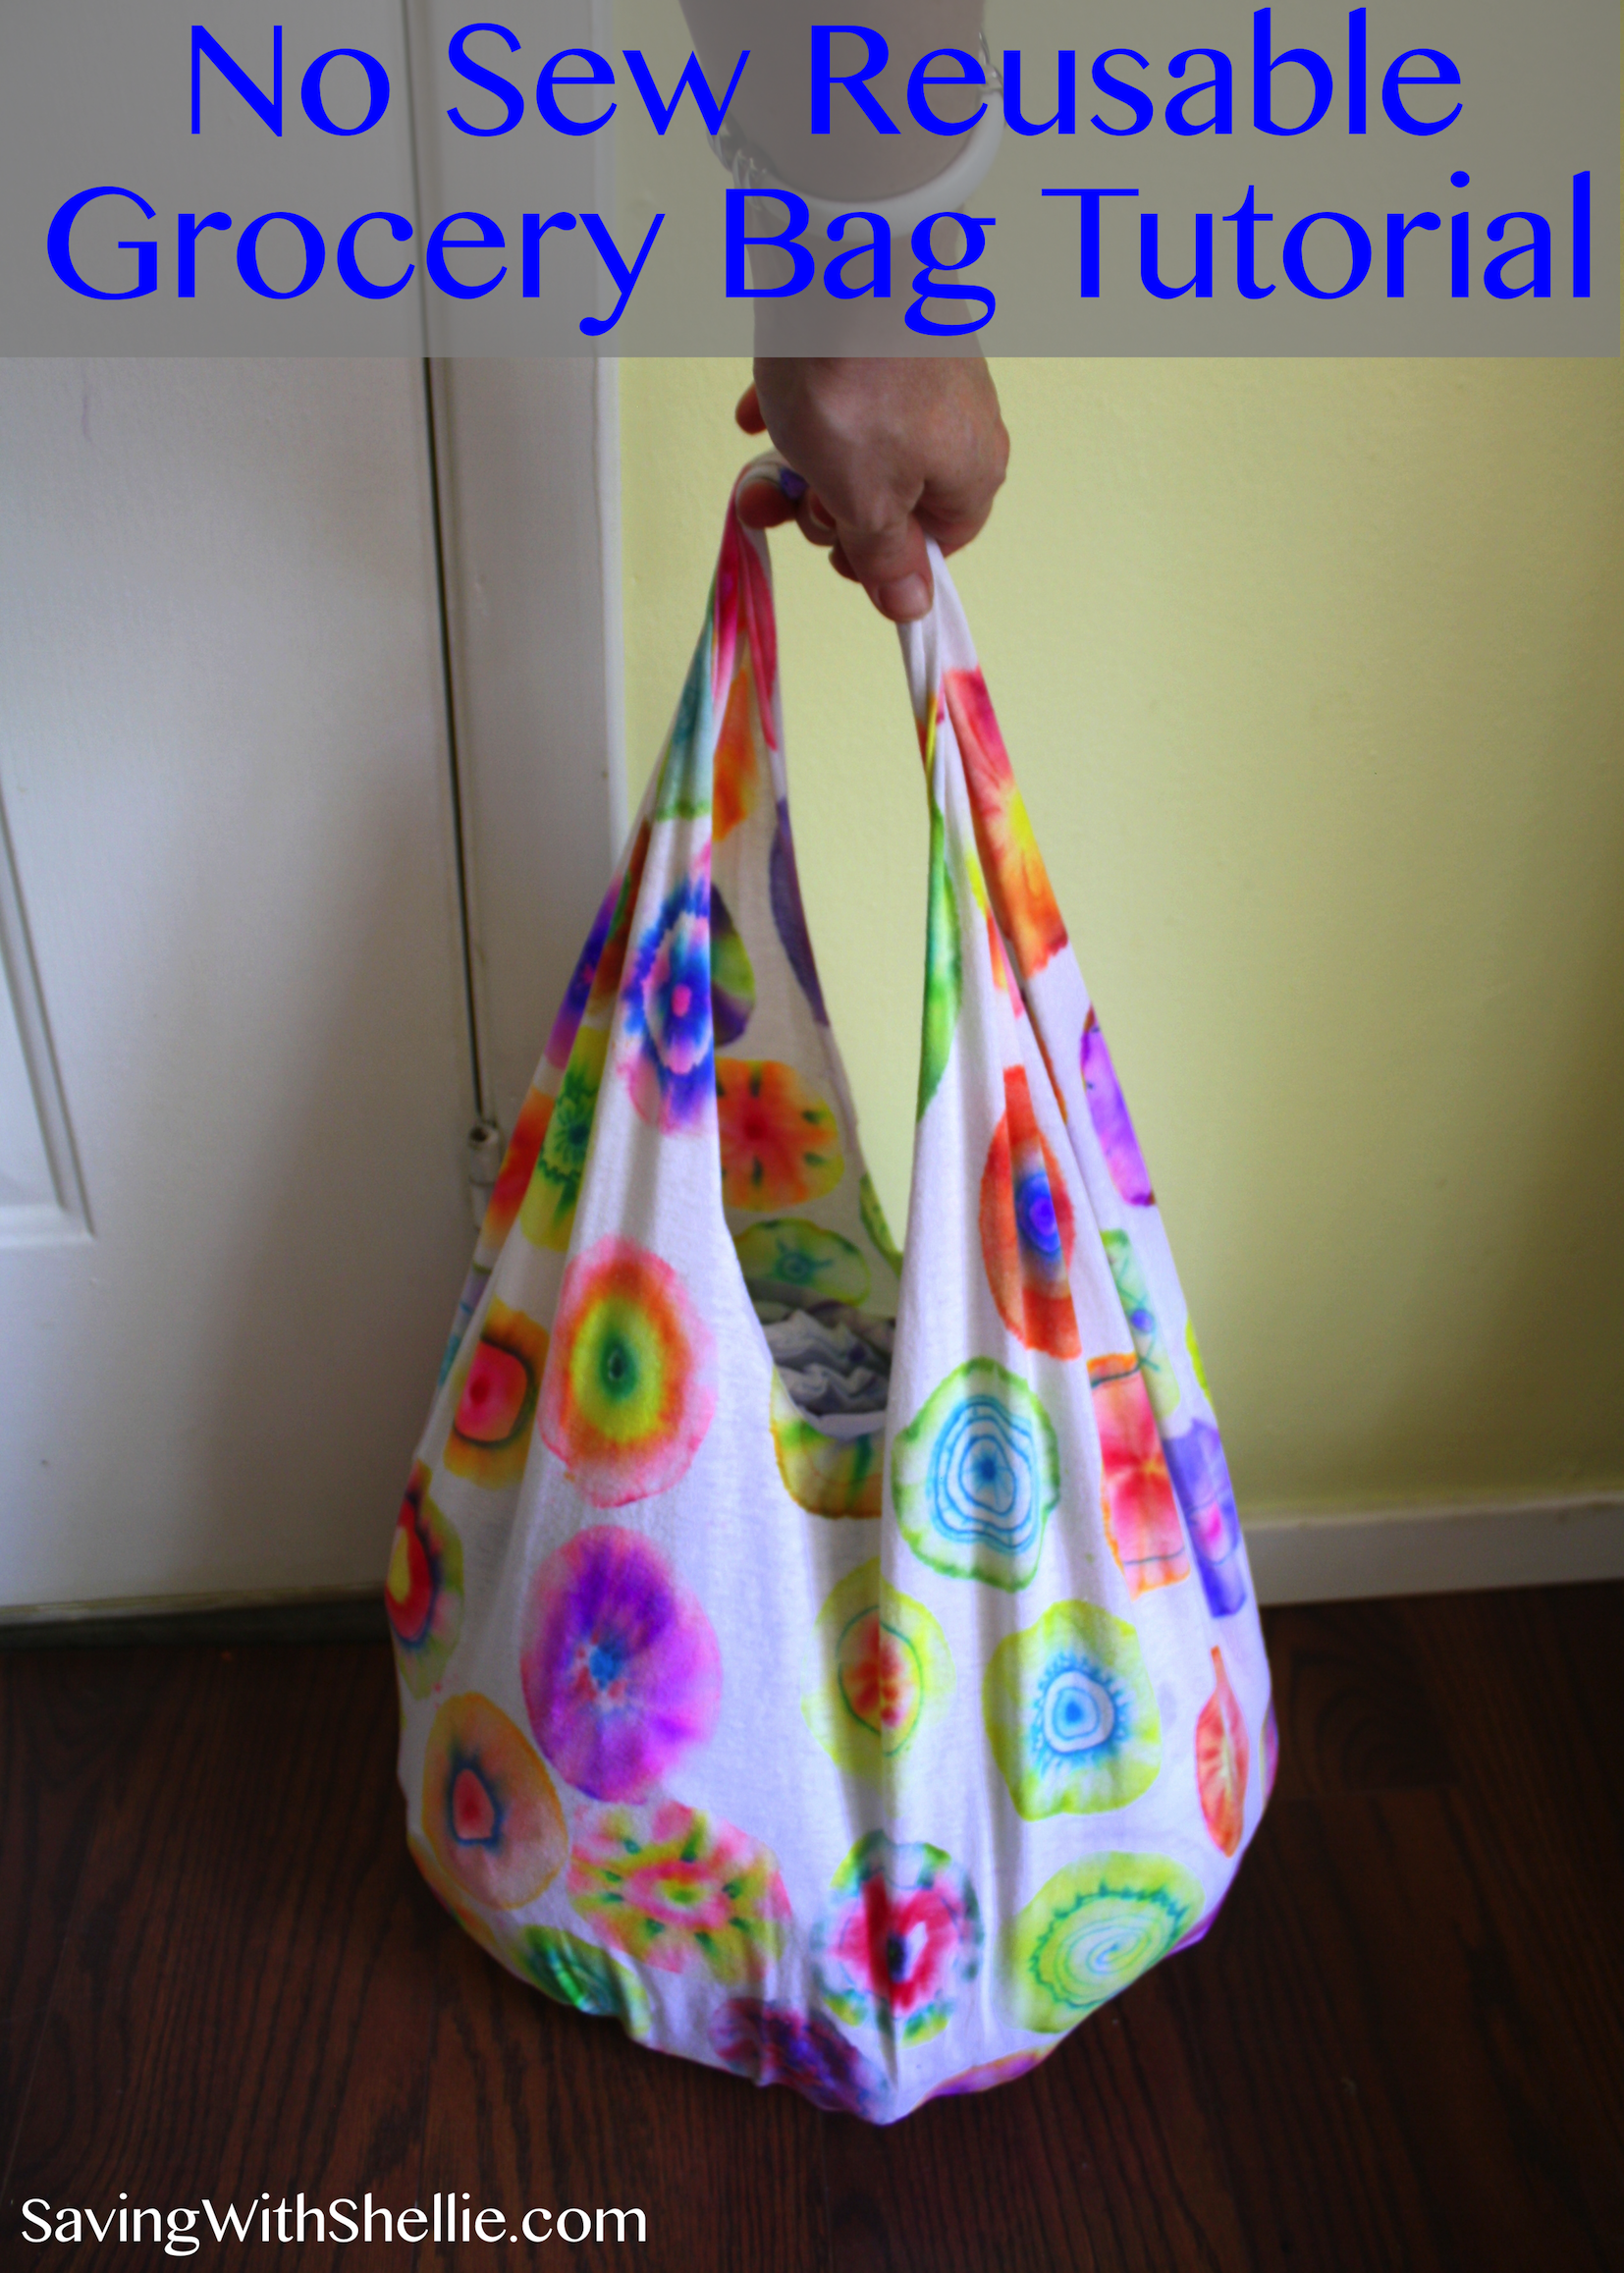 No Sew Grocery Bag Tutorial Sewing to sell, Reusable